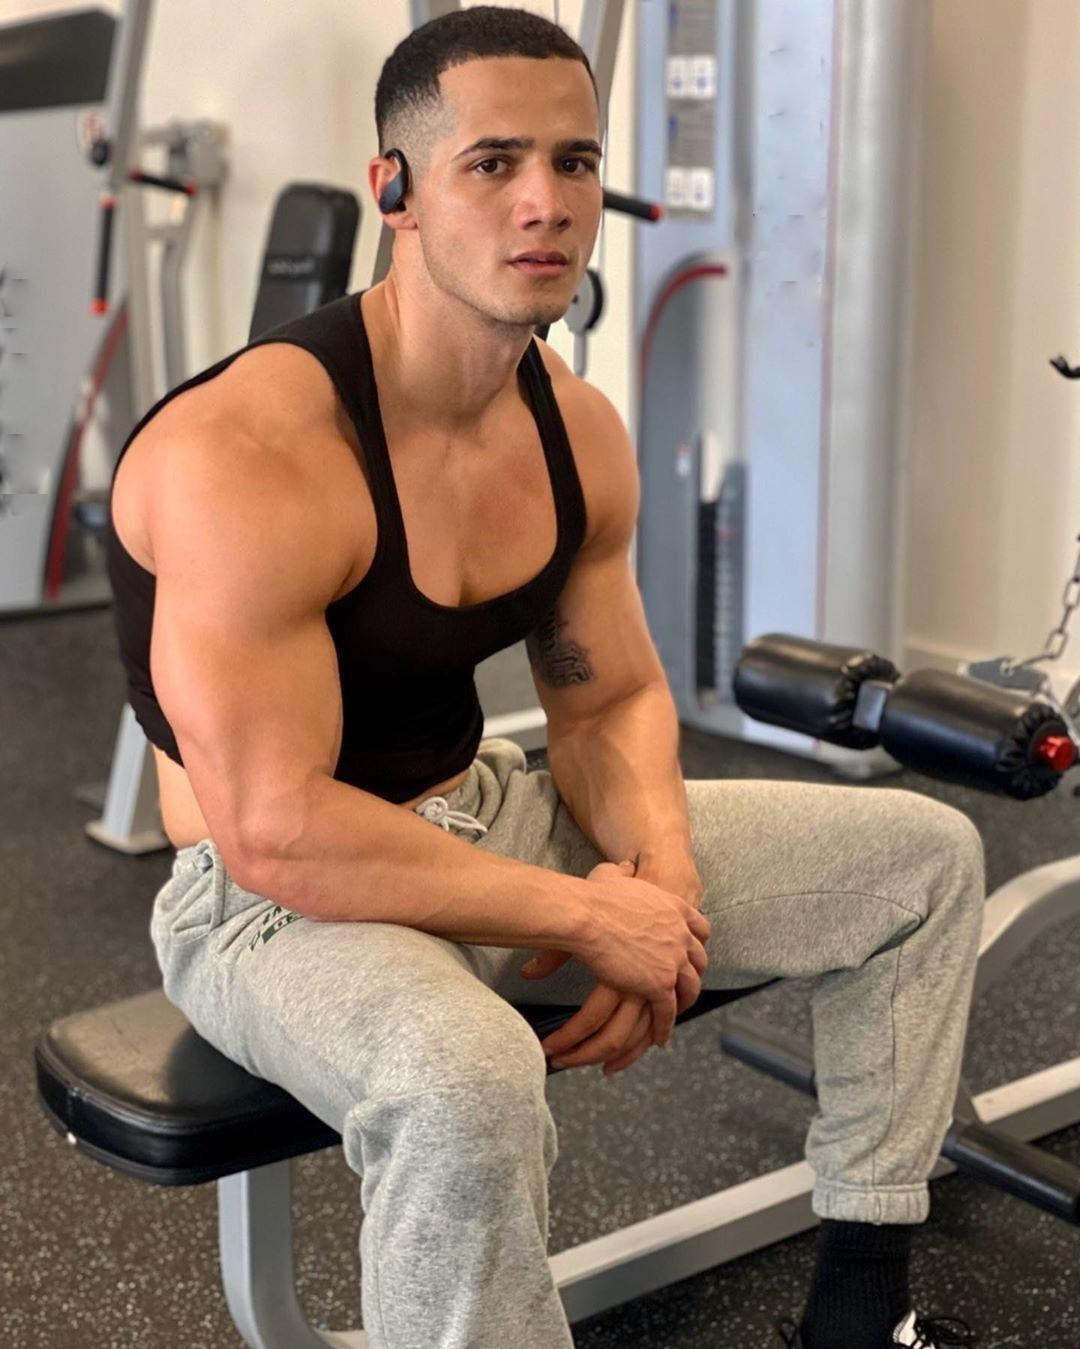 beefy-mixed-blatino-puertorican-hunk-dude-big-biceps-sweaty-gym-workout